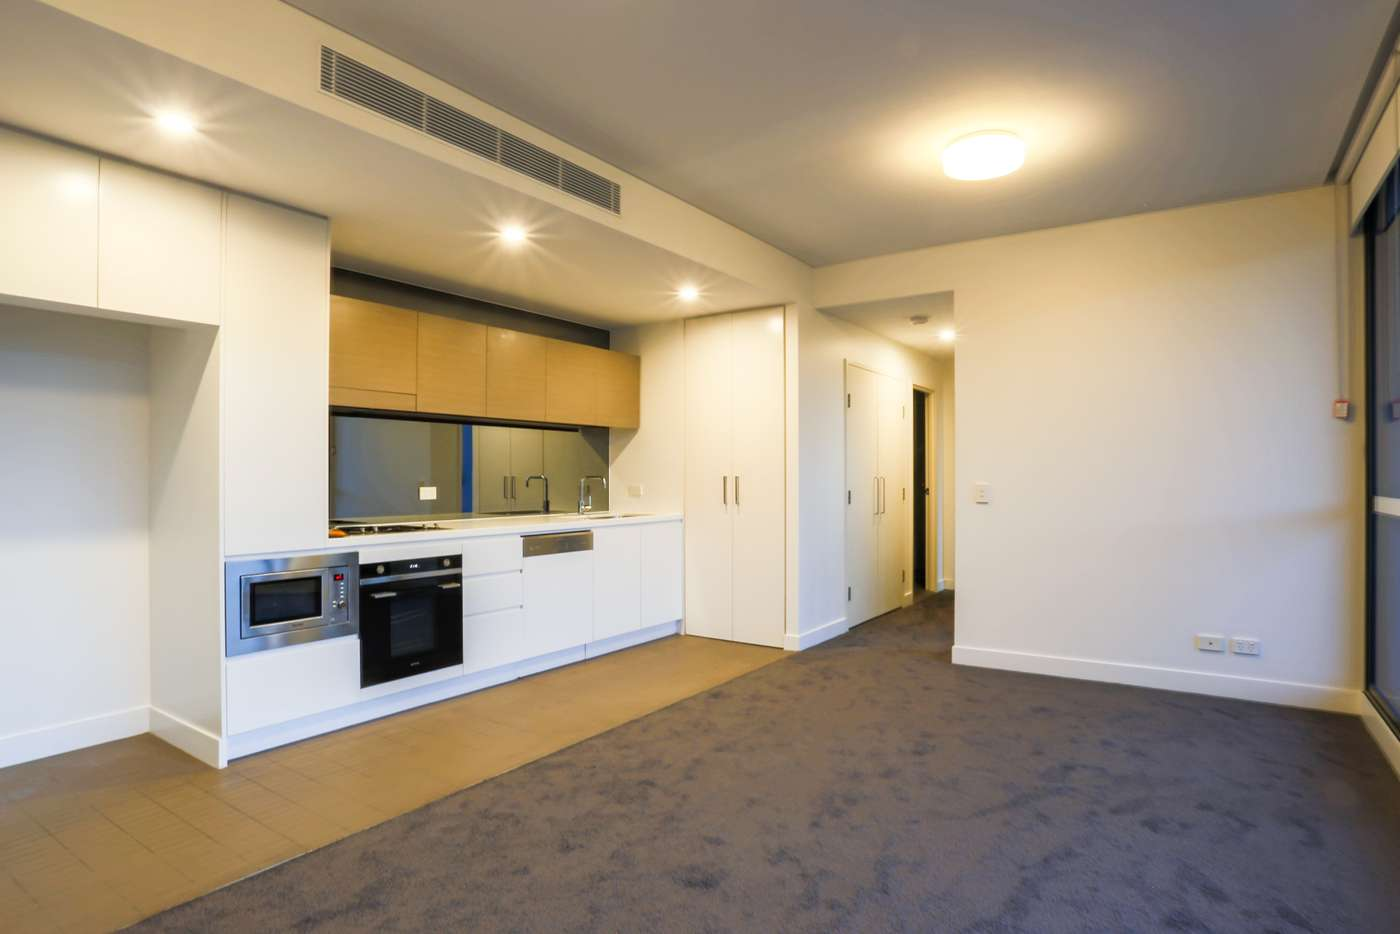 Main view of Homely apartment listing, 14H Mentmore Ave, Rosebery NSW 2018